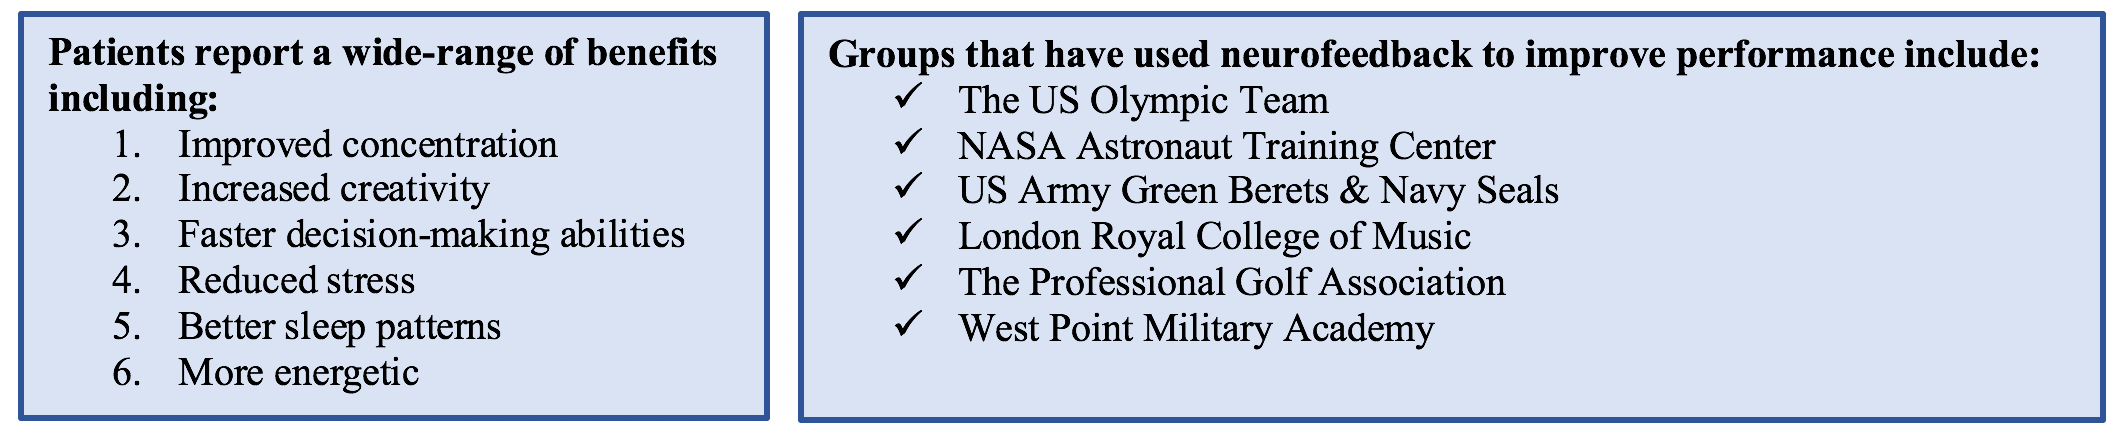 Neurofeedback groups that have used it